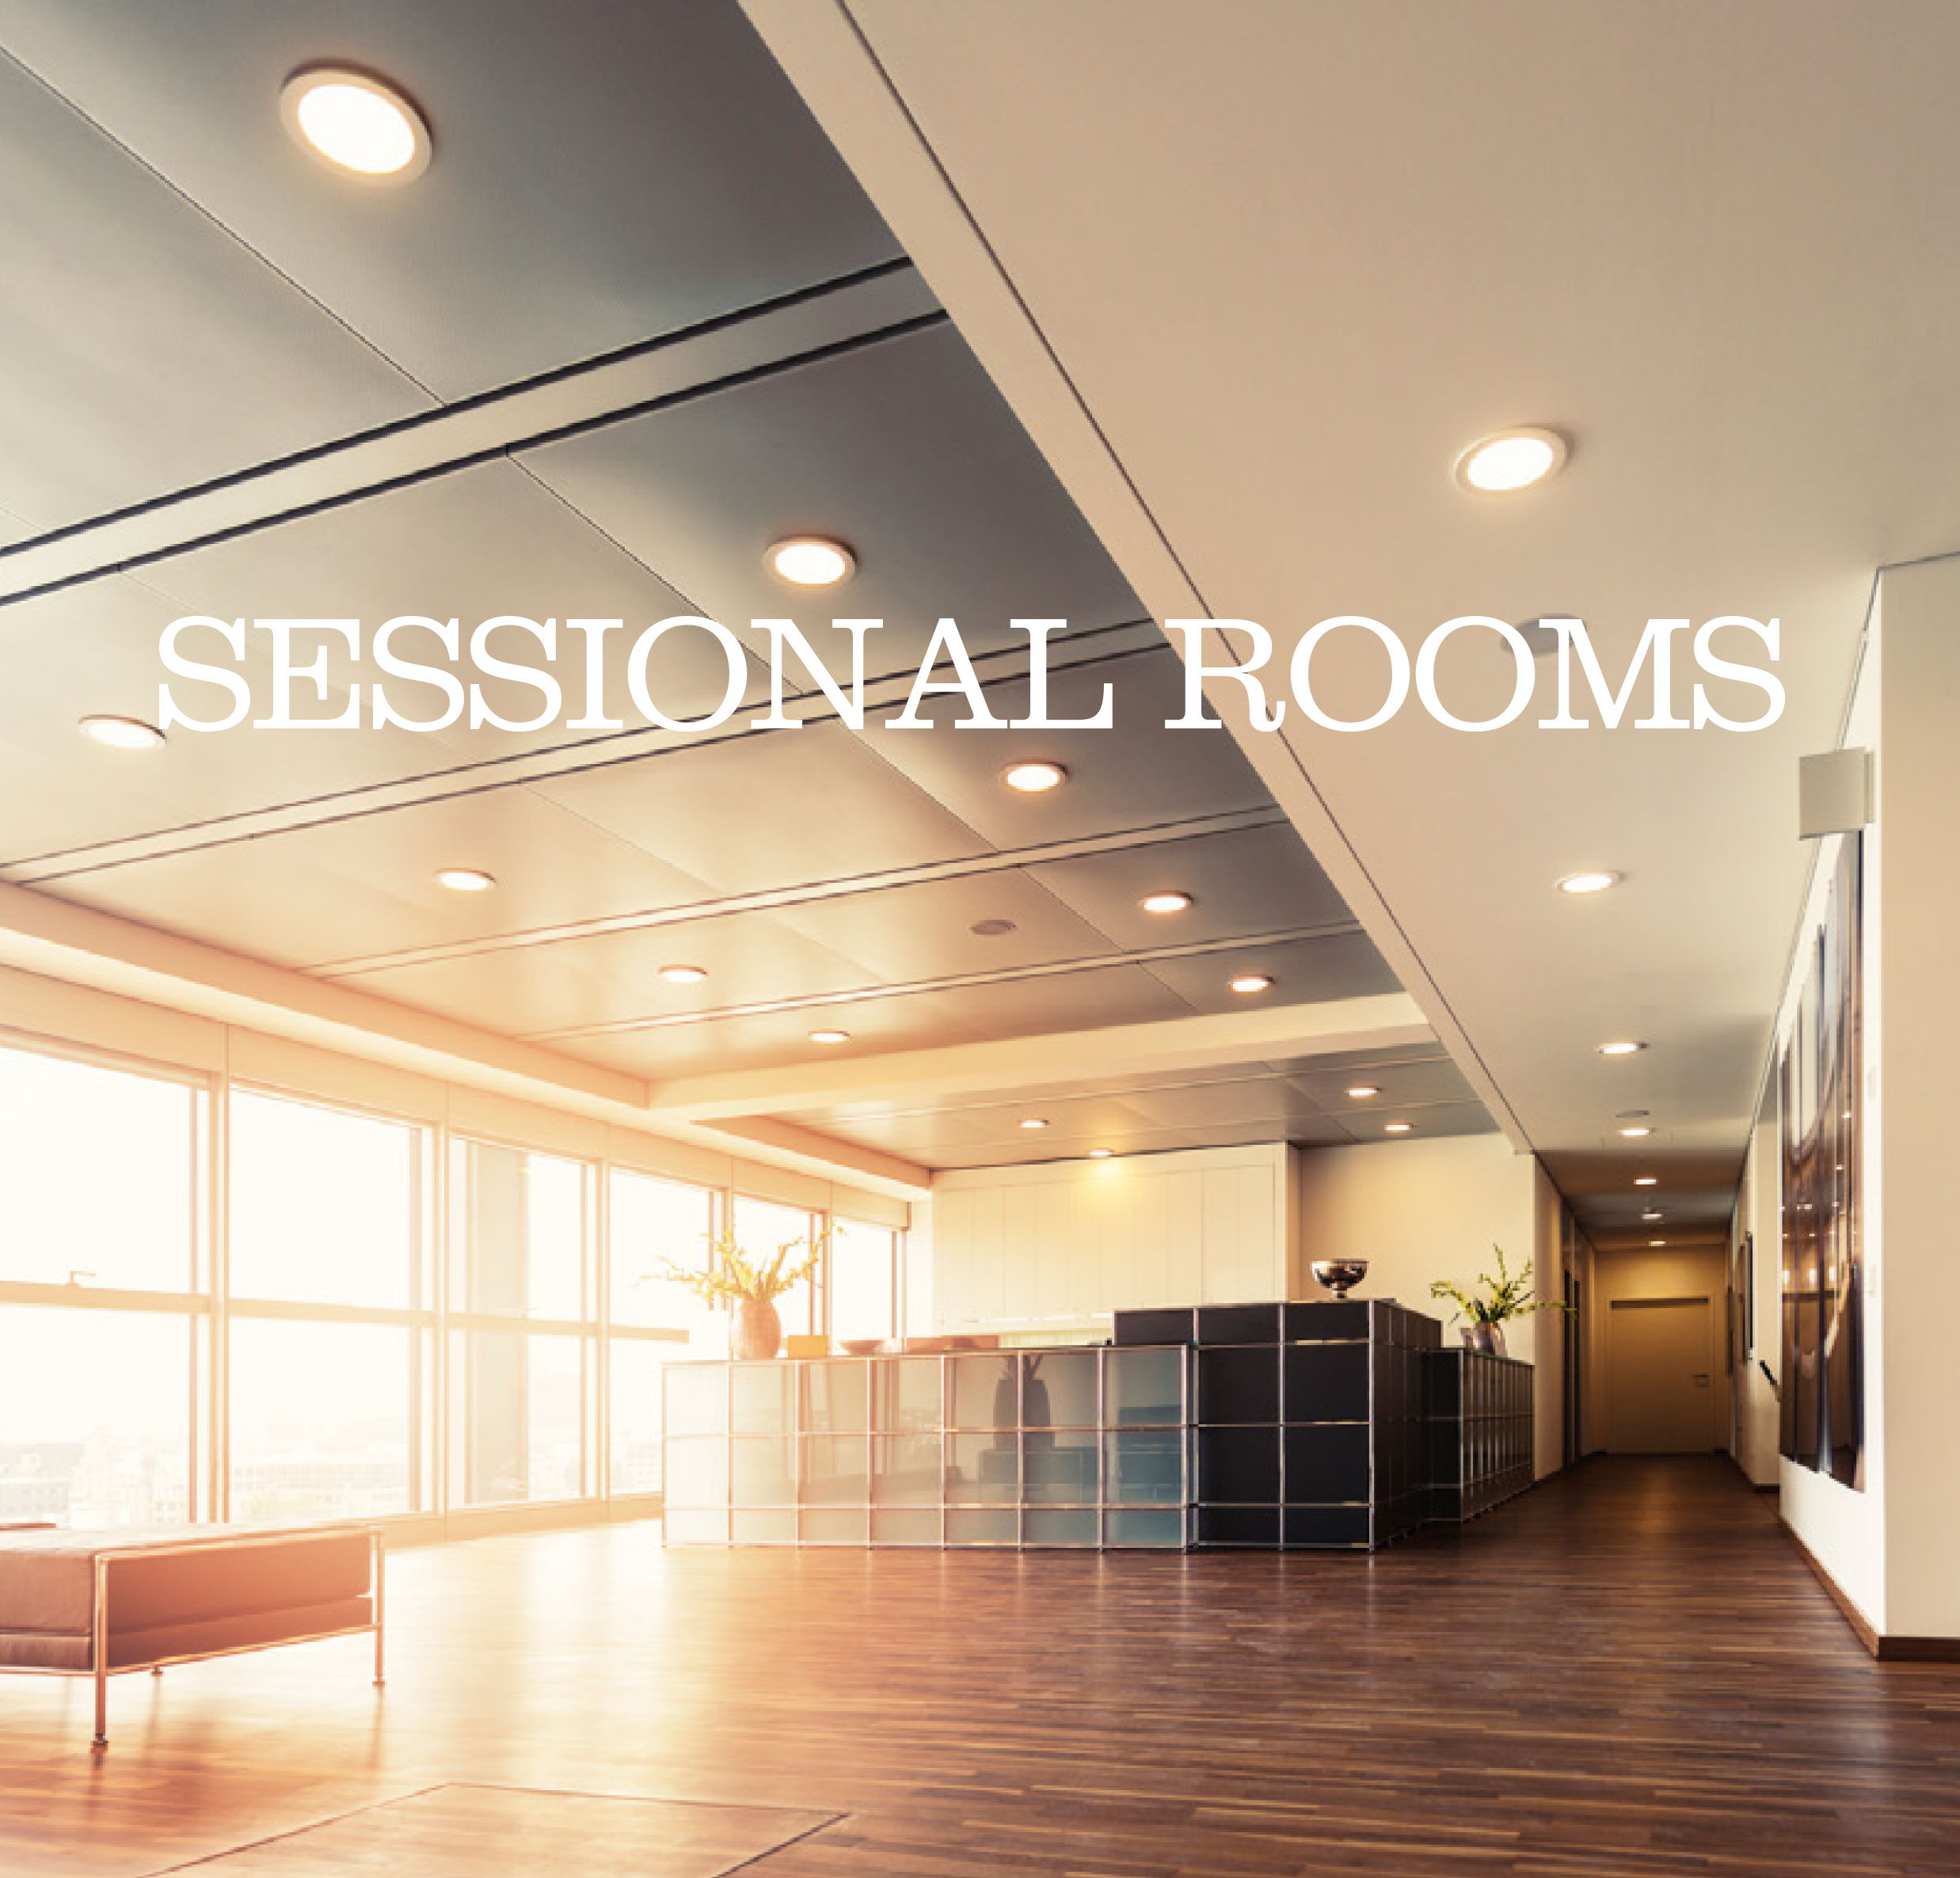 Renting-sessional-space----Chris-thumb